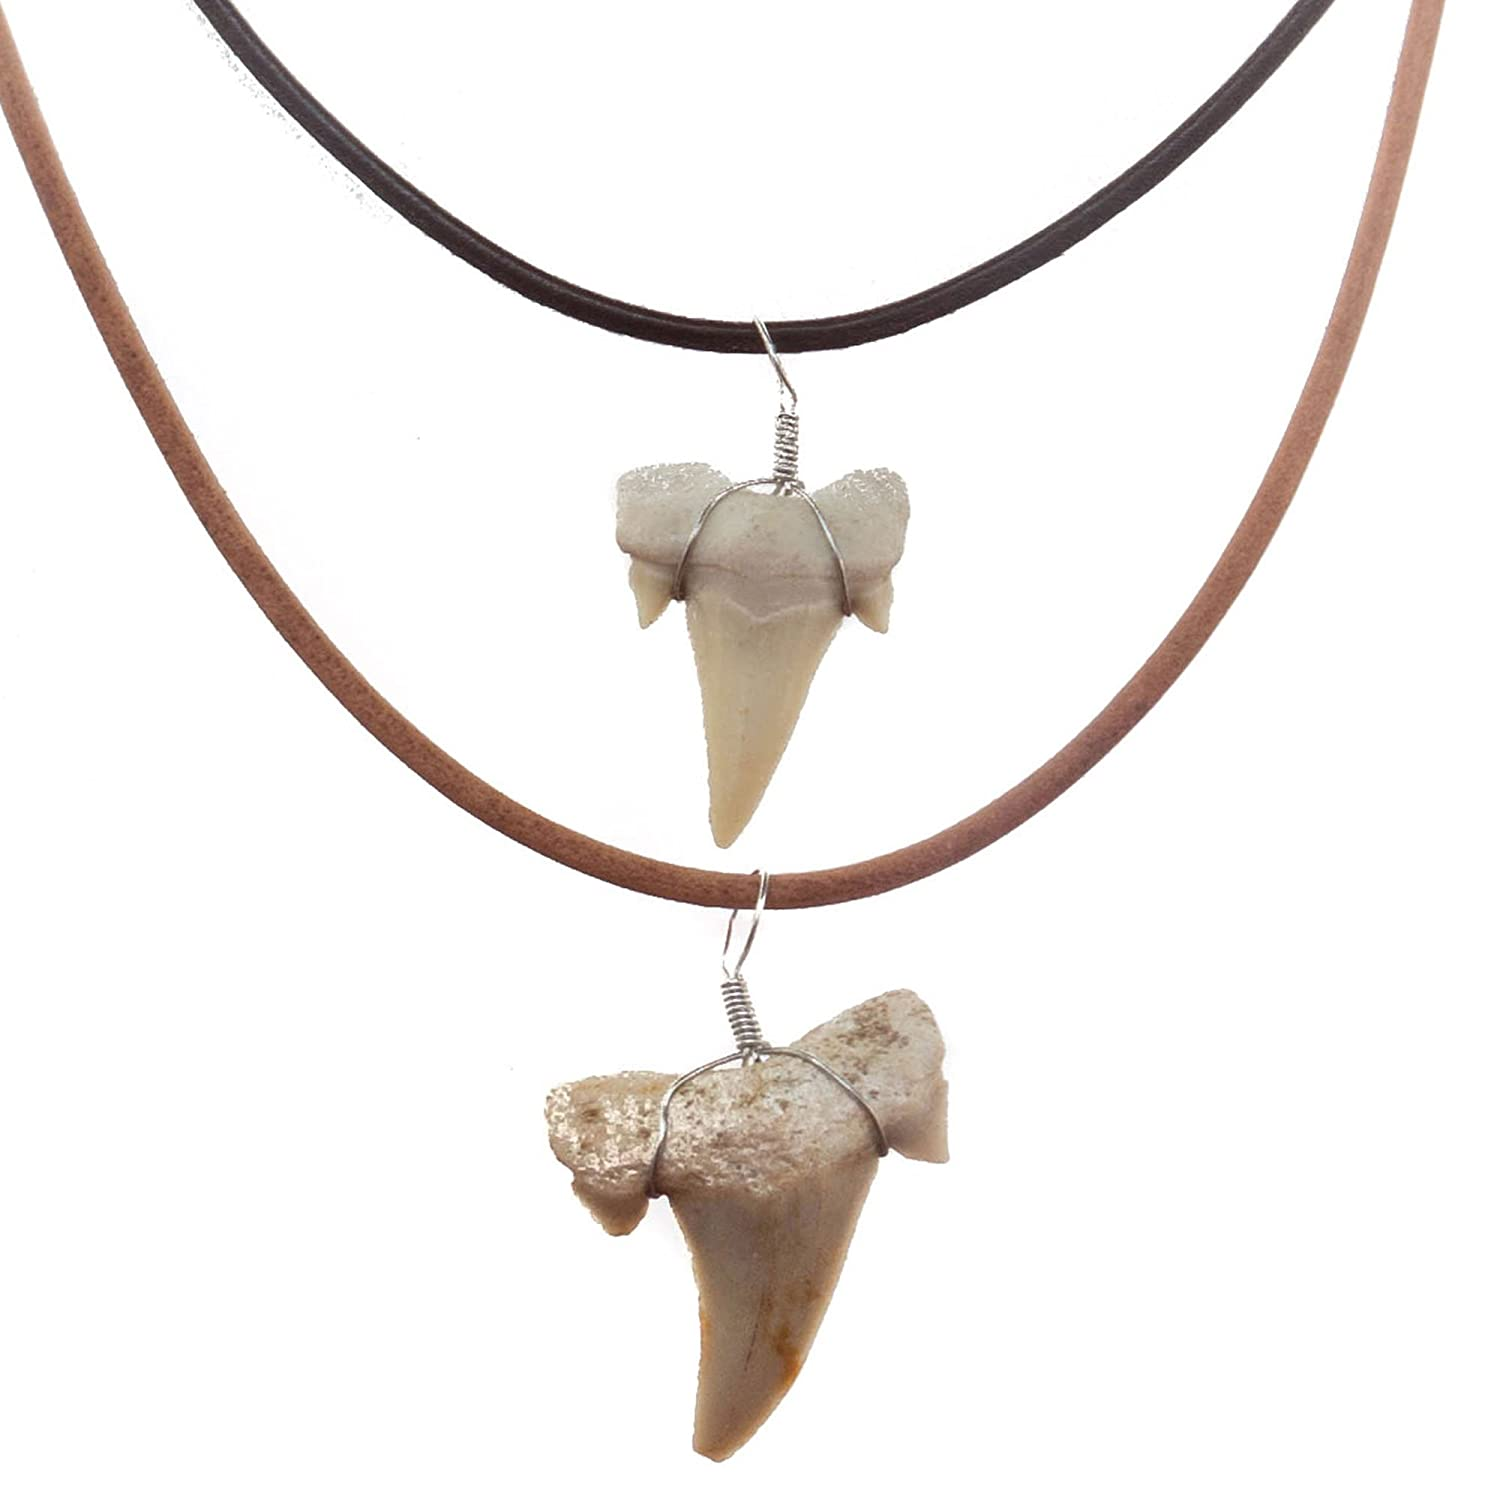 FROG SAC Real Shark Tooth Necklace for Men Boys Teens Kids (2 Pieces) Genuine Fossil Shark Tooth Pendant on Greek Leather Necklace – Mens Classic Surfer Necklace - Fashion Jewelry by